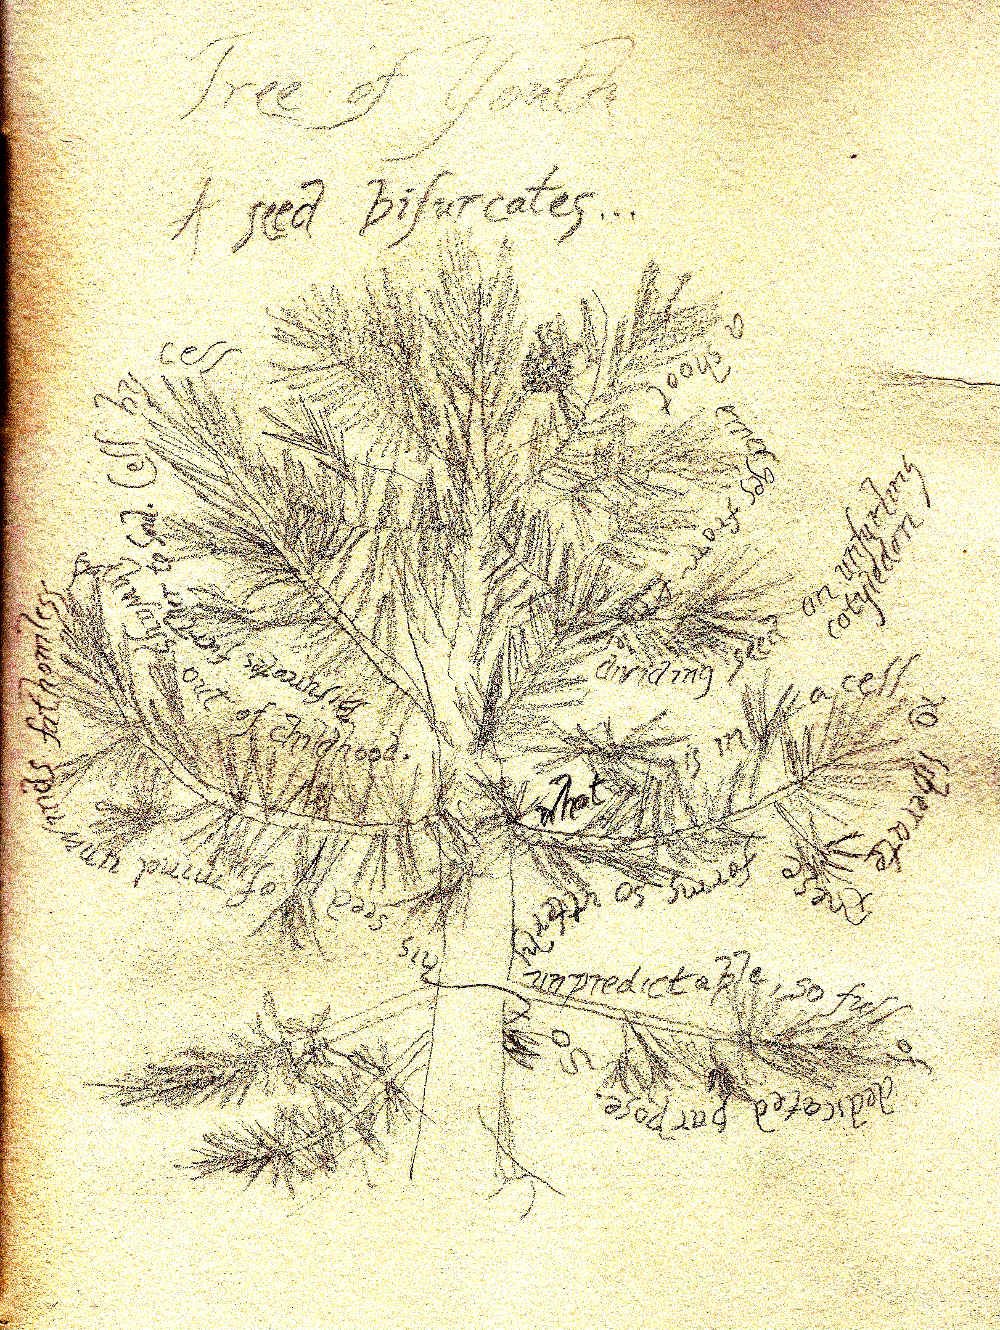 A page from 'A Book of Trees, Rocks, and Horizons'